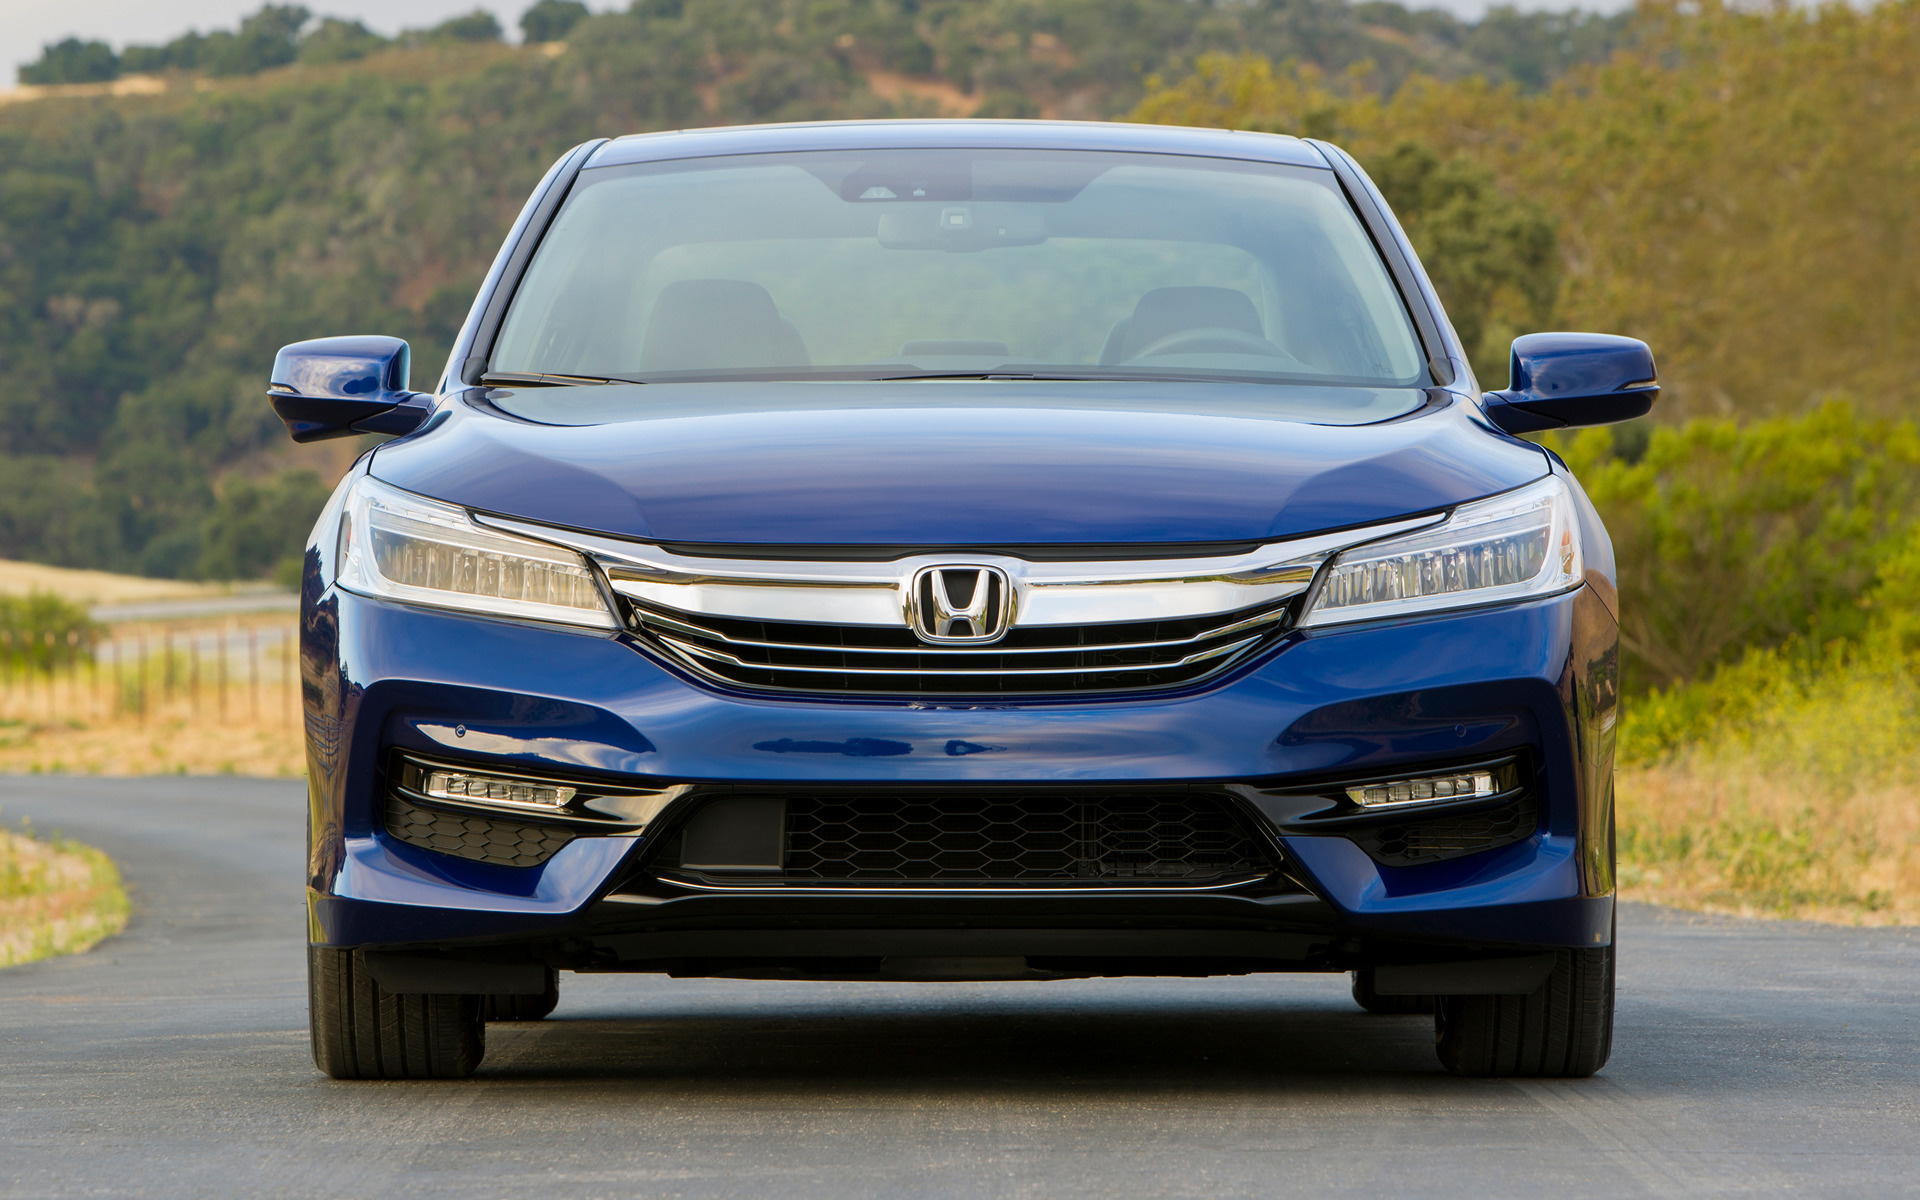 Honda Accord Hybrid Touring (2017) US Wallpapers and HD Images - Car Pixel